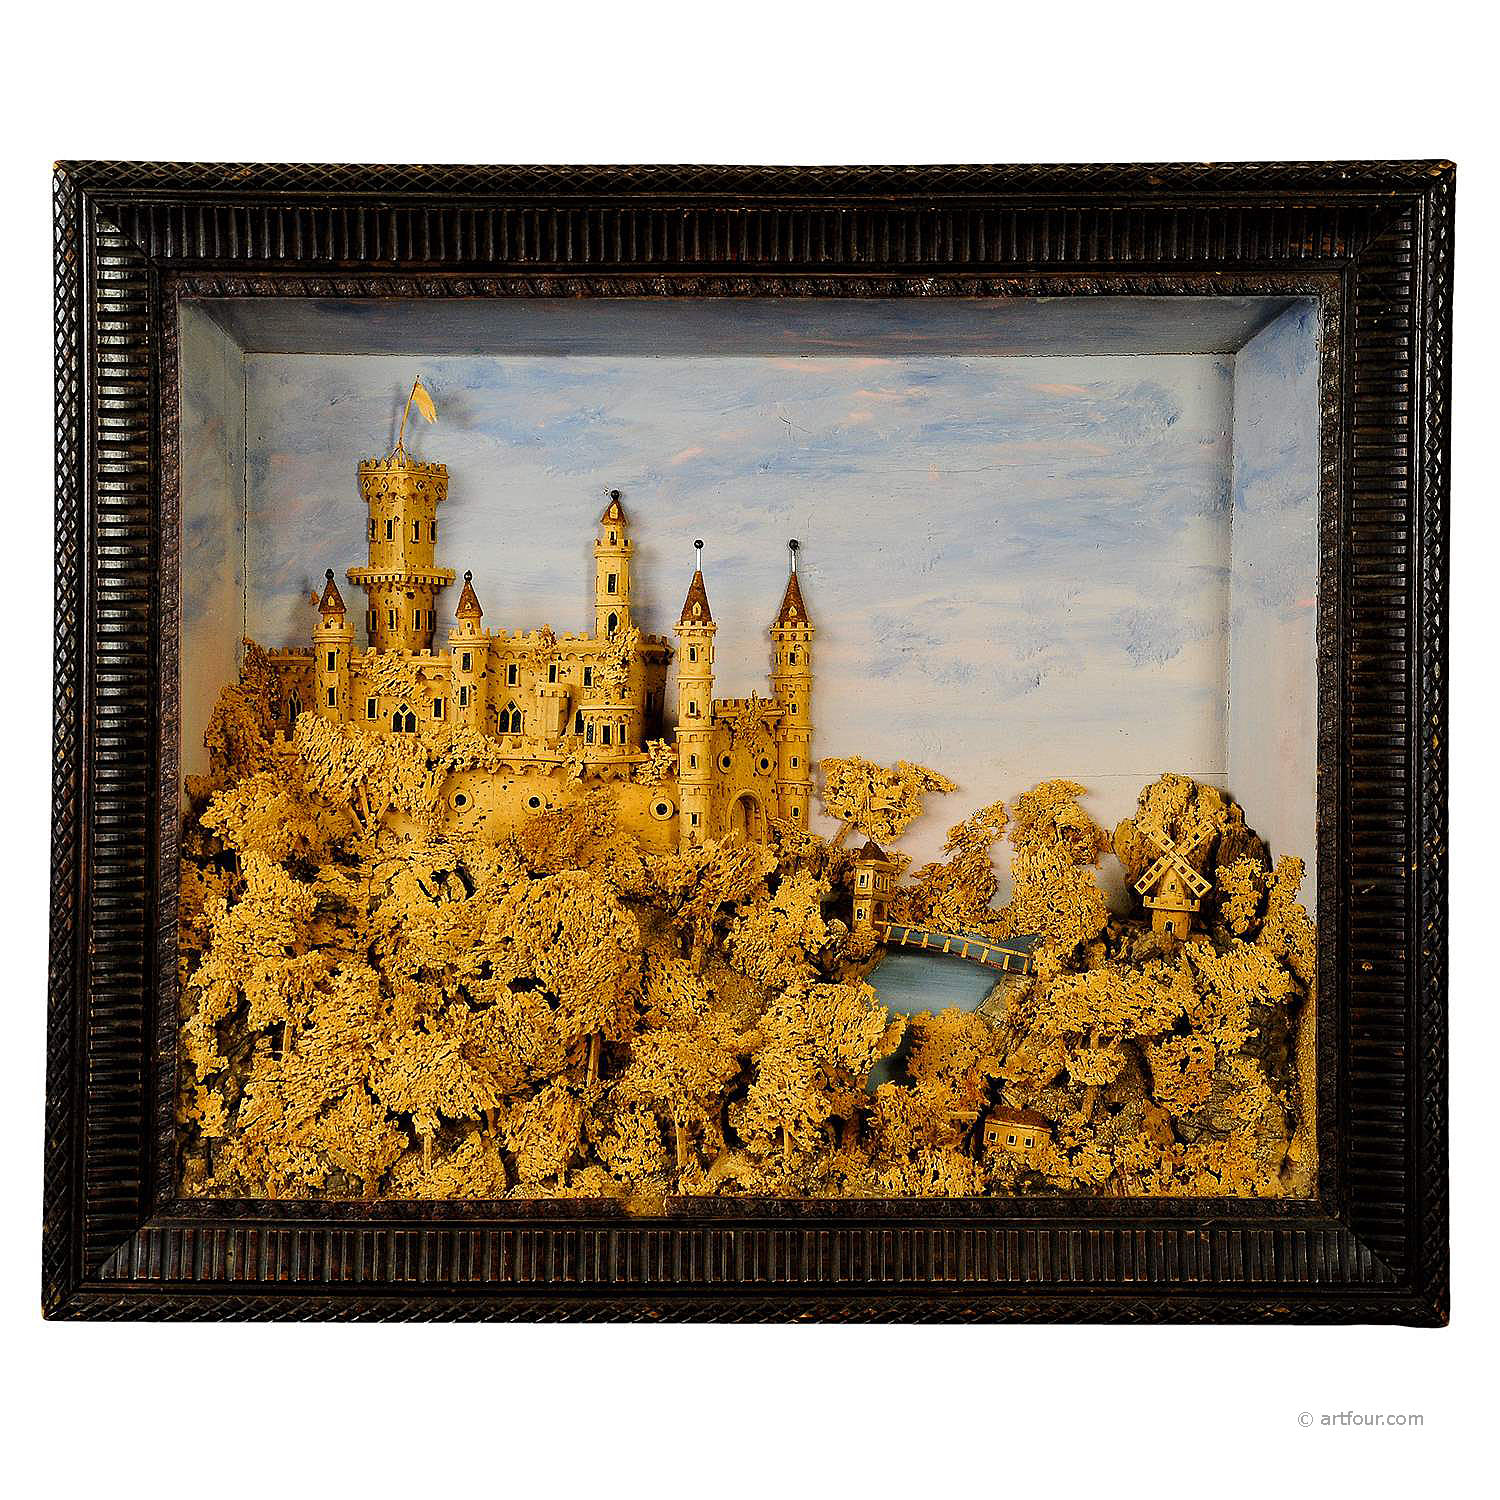 antique impressive cork carving with castle scene ca. 1880